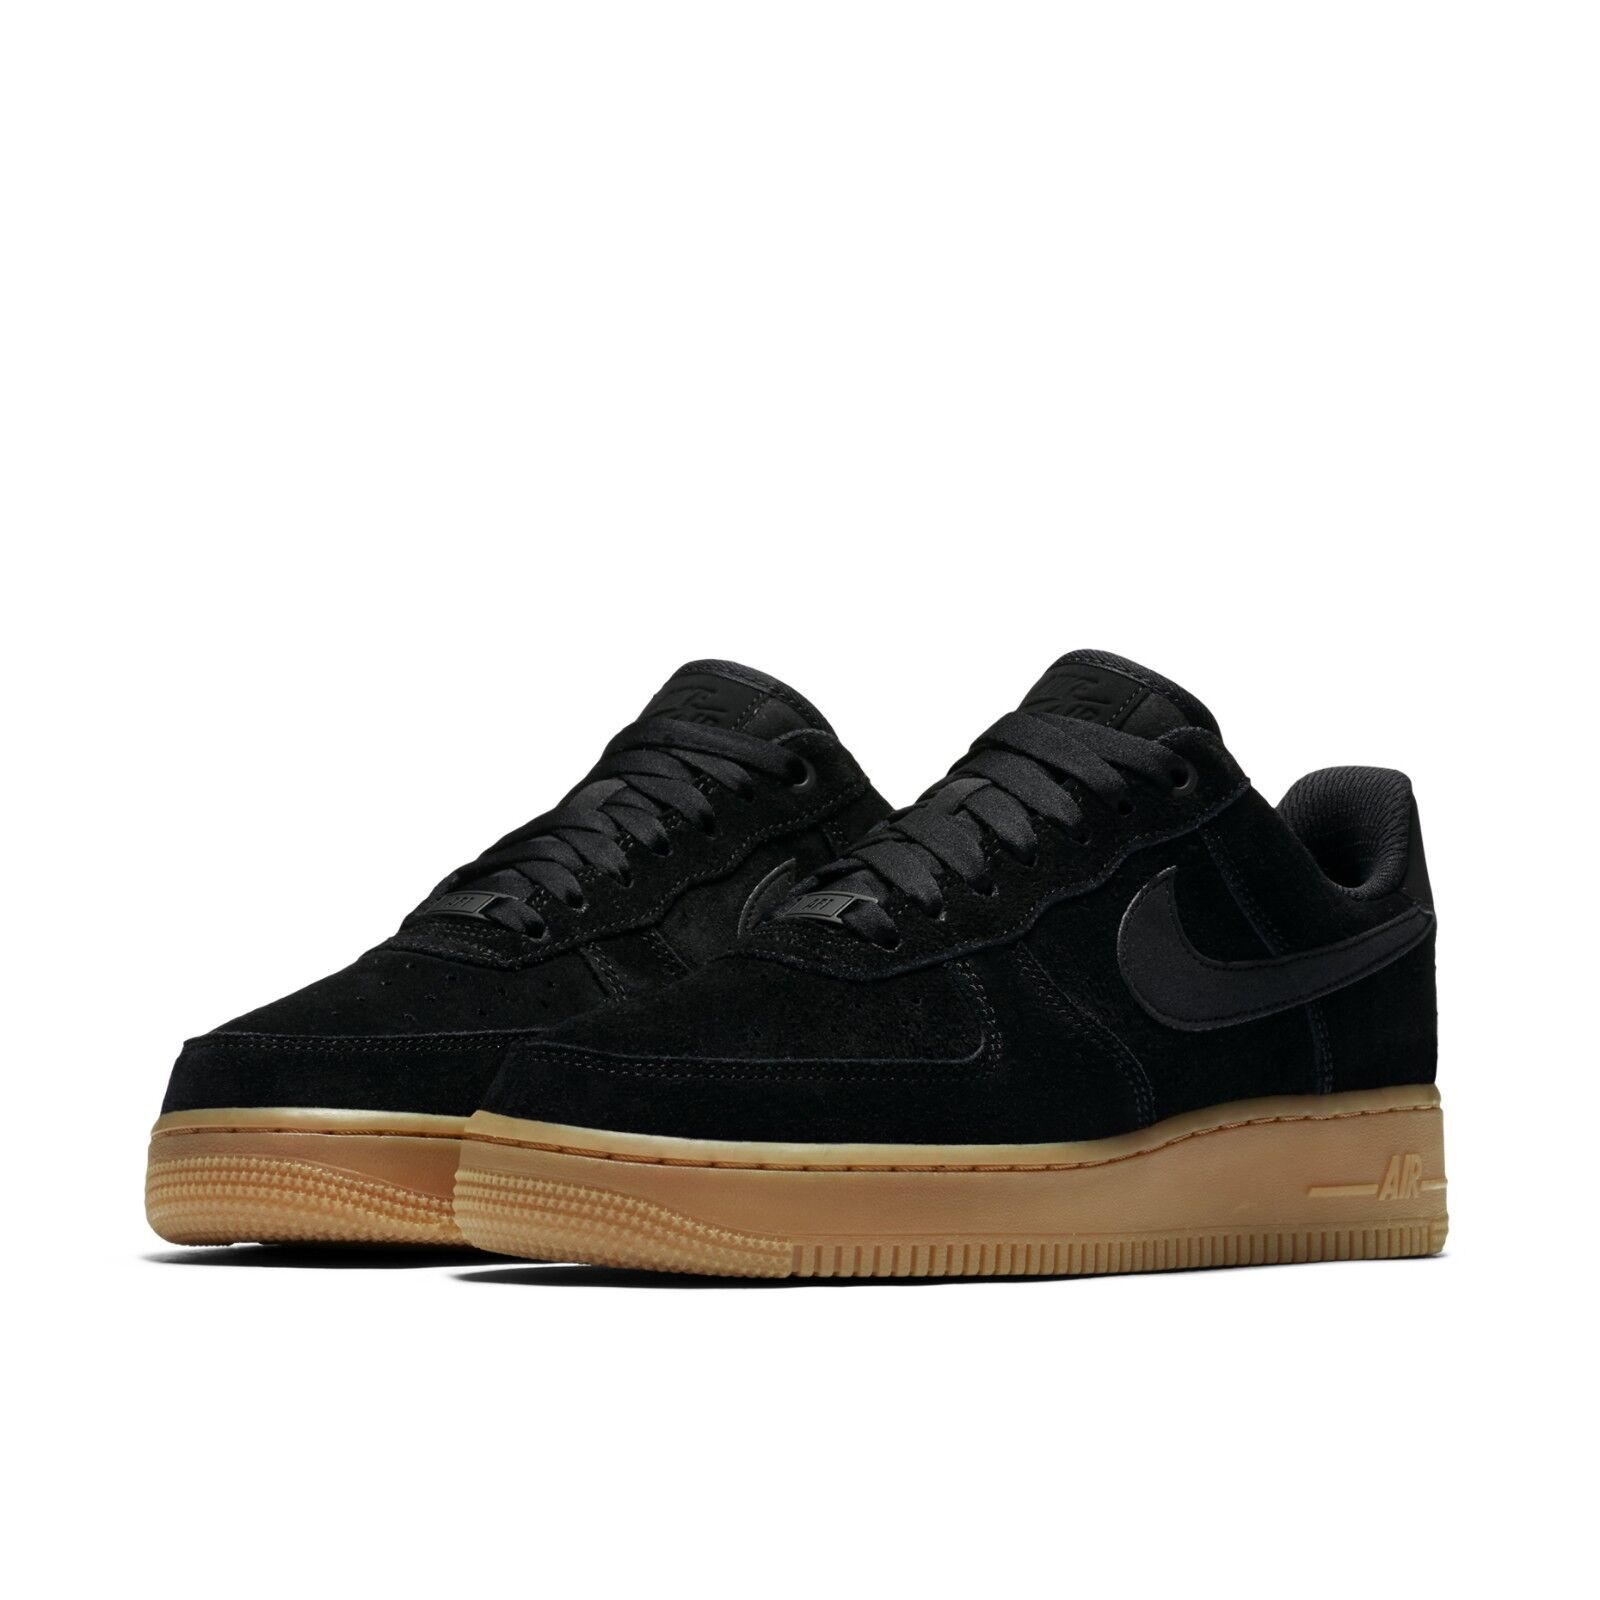 new style e6b61 5ee98 Nike Womens Wmns Air Force 1 07 SE Black Gum Med Brown Suede AF1 AA0287-002